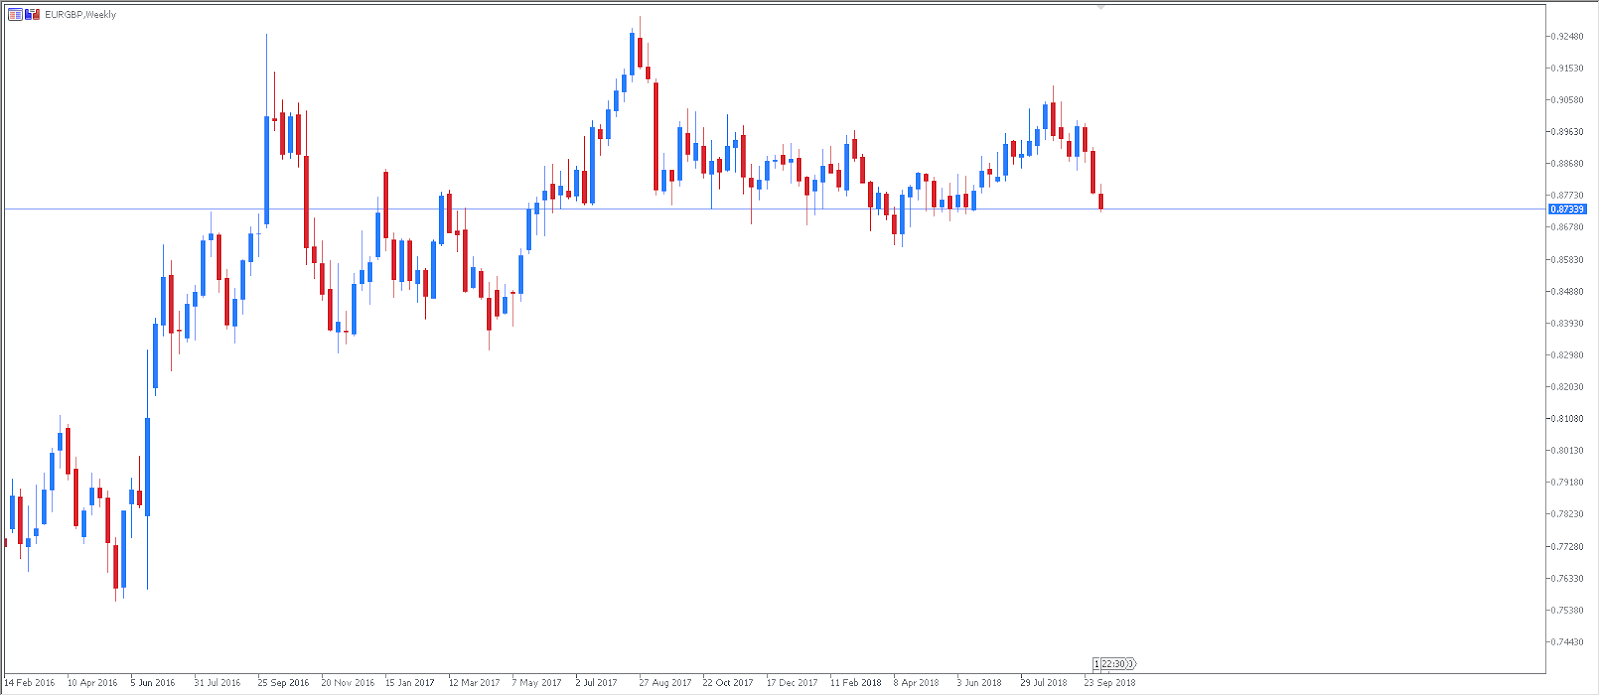 EURGBP Weekly Chart - Technical Analysis